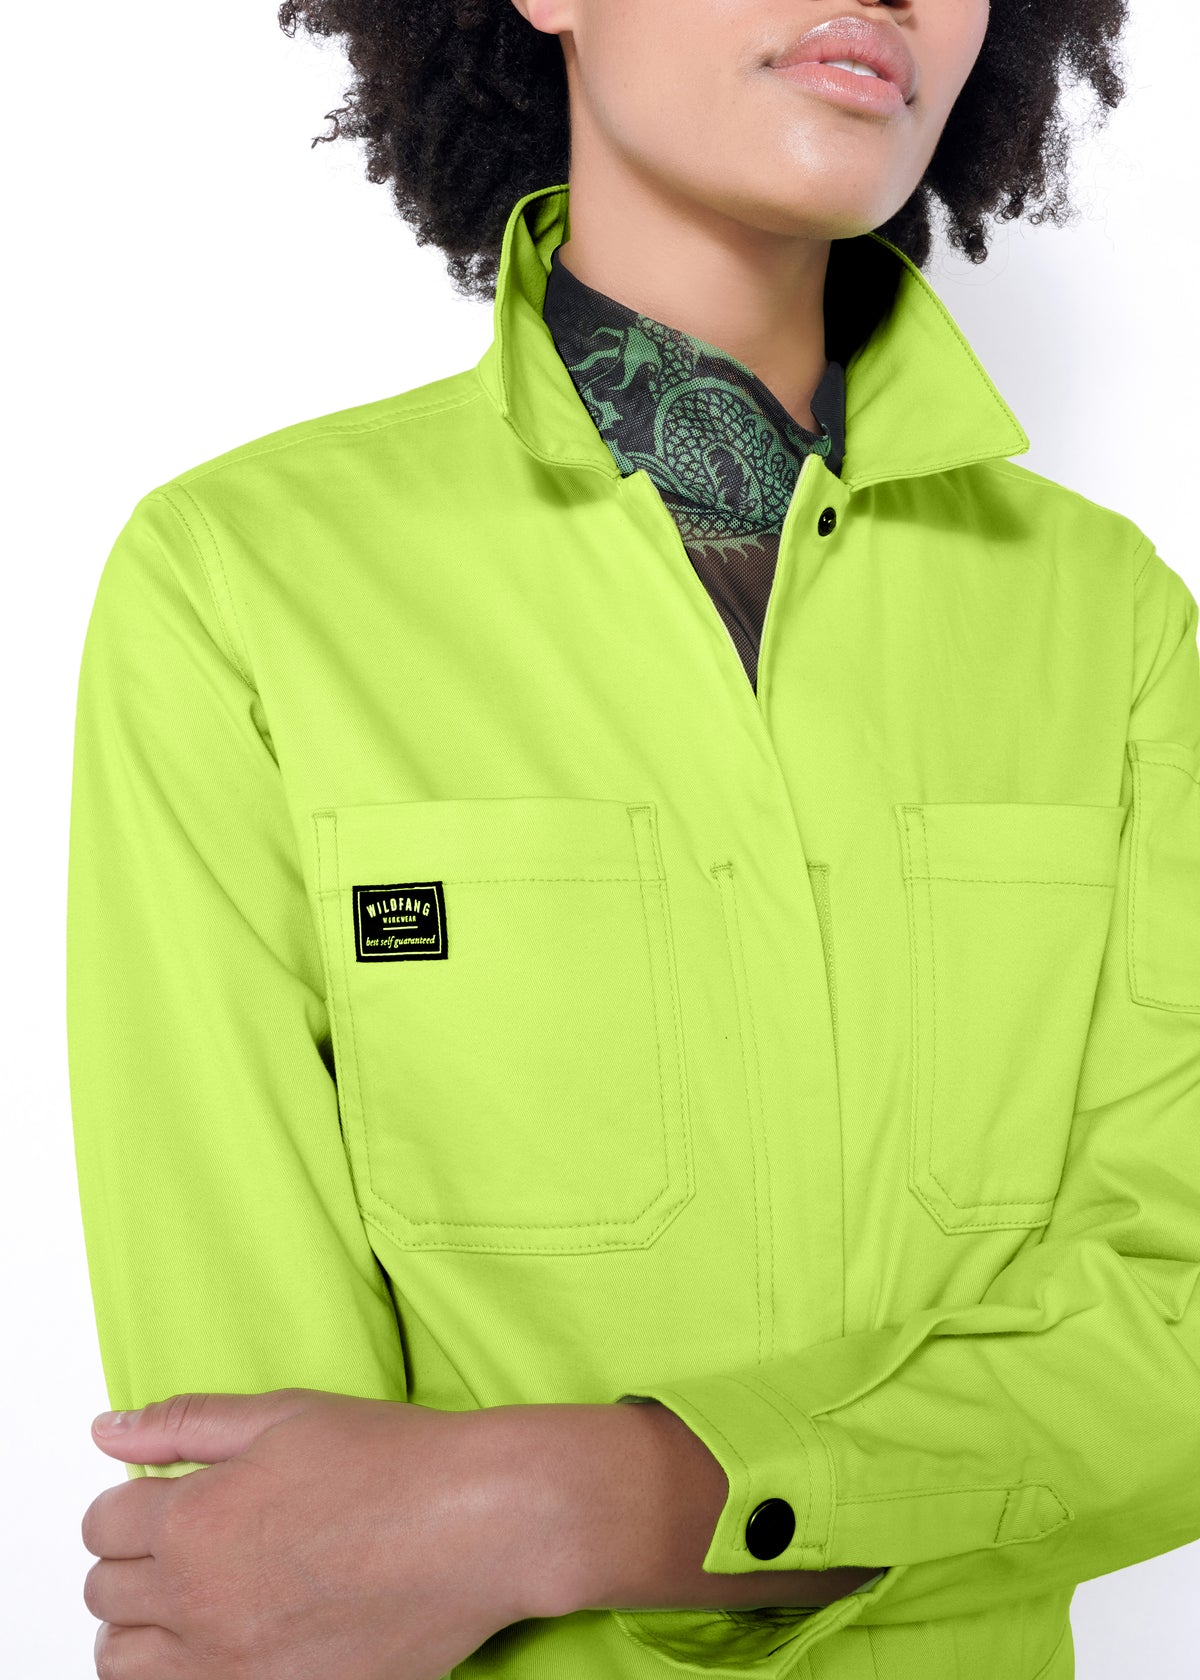 Model wearing neon green long sleeved essential coverall jumpsuit in size small, layered with green and black mesh top underneath and collar popped